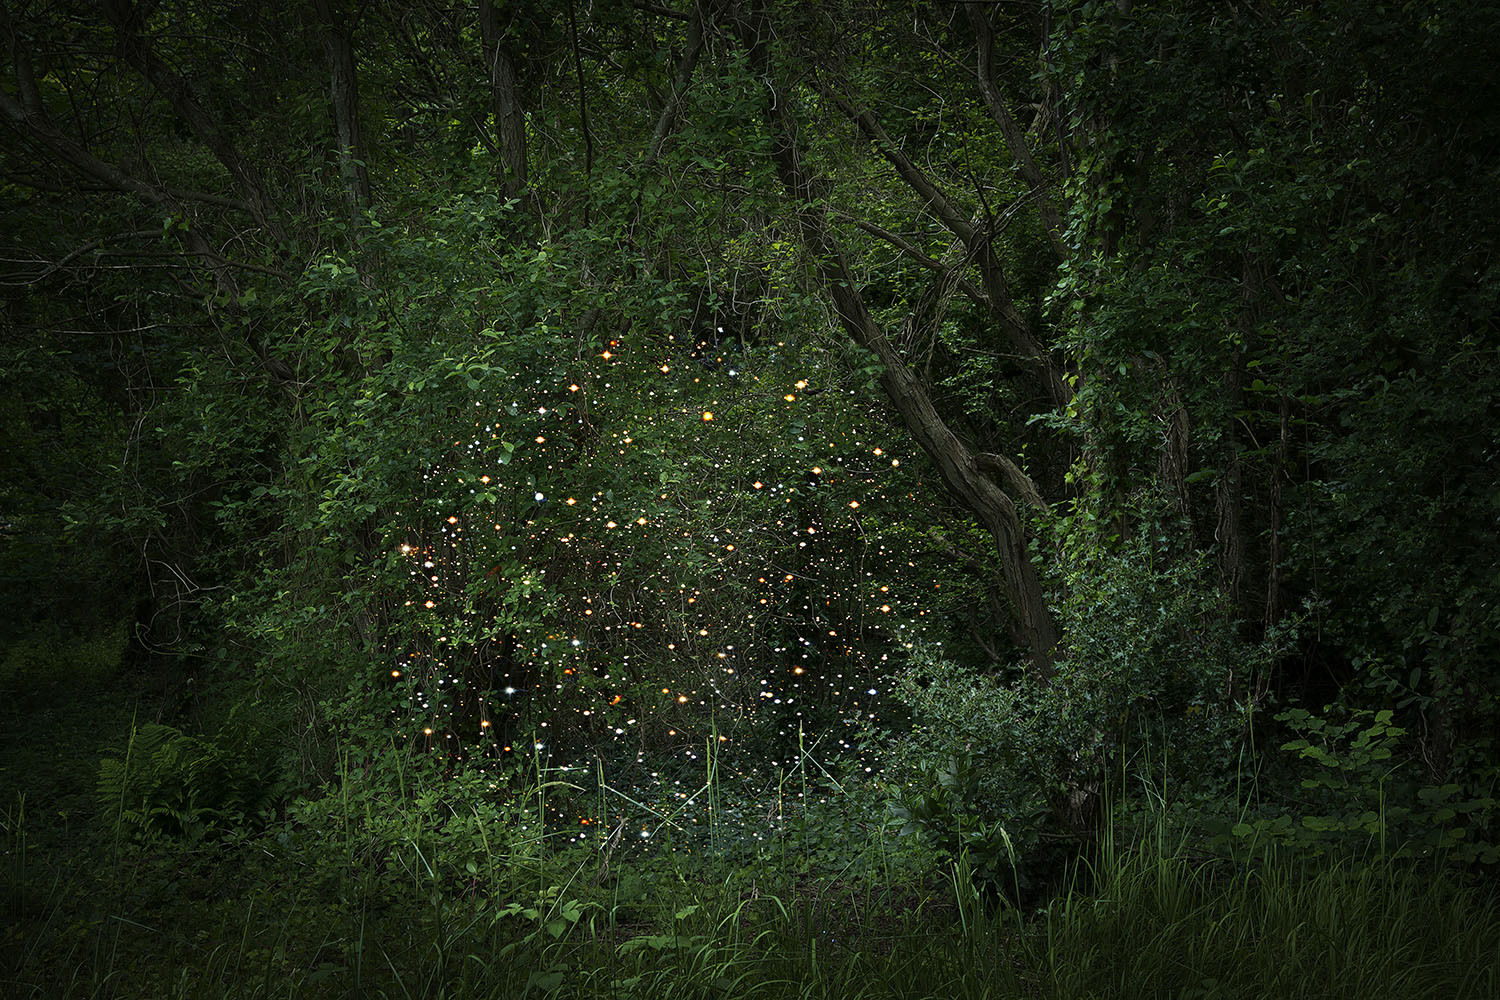 Ellie Davies - Starry starry night revisited at Sophie Maree Gallery